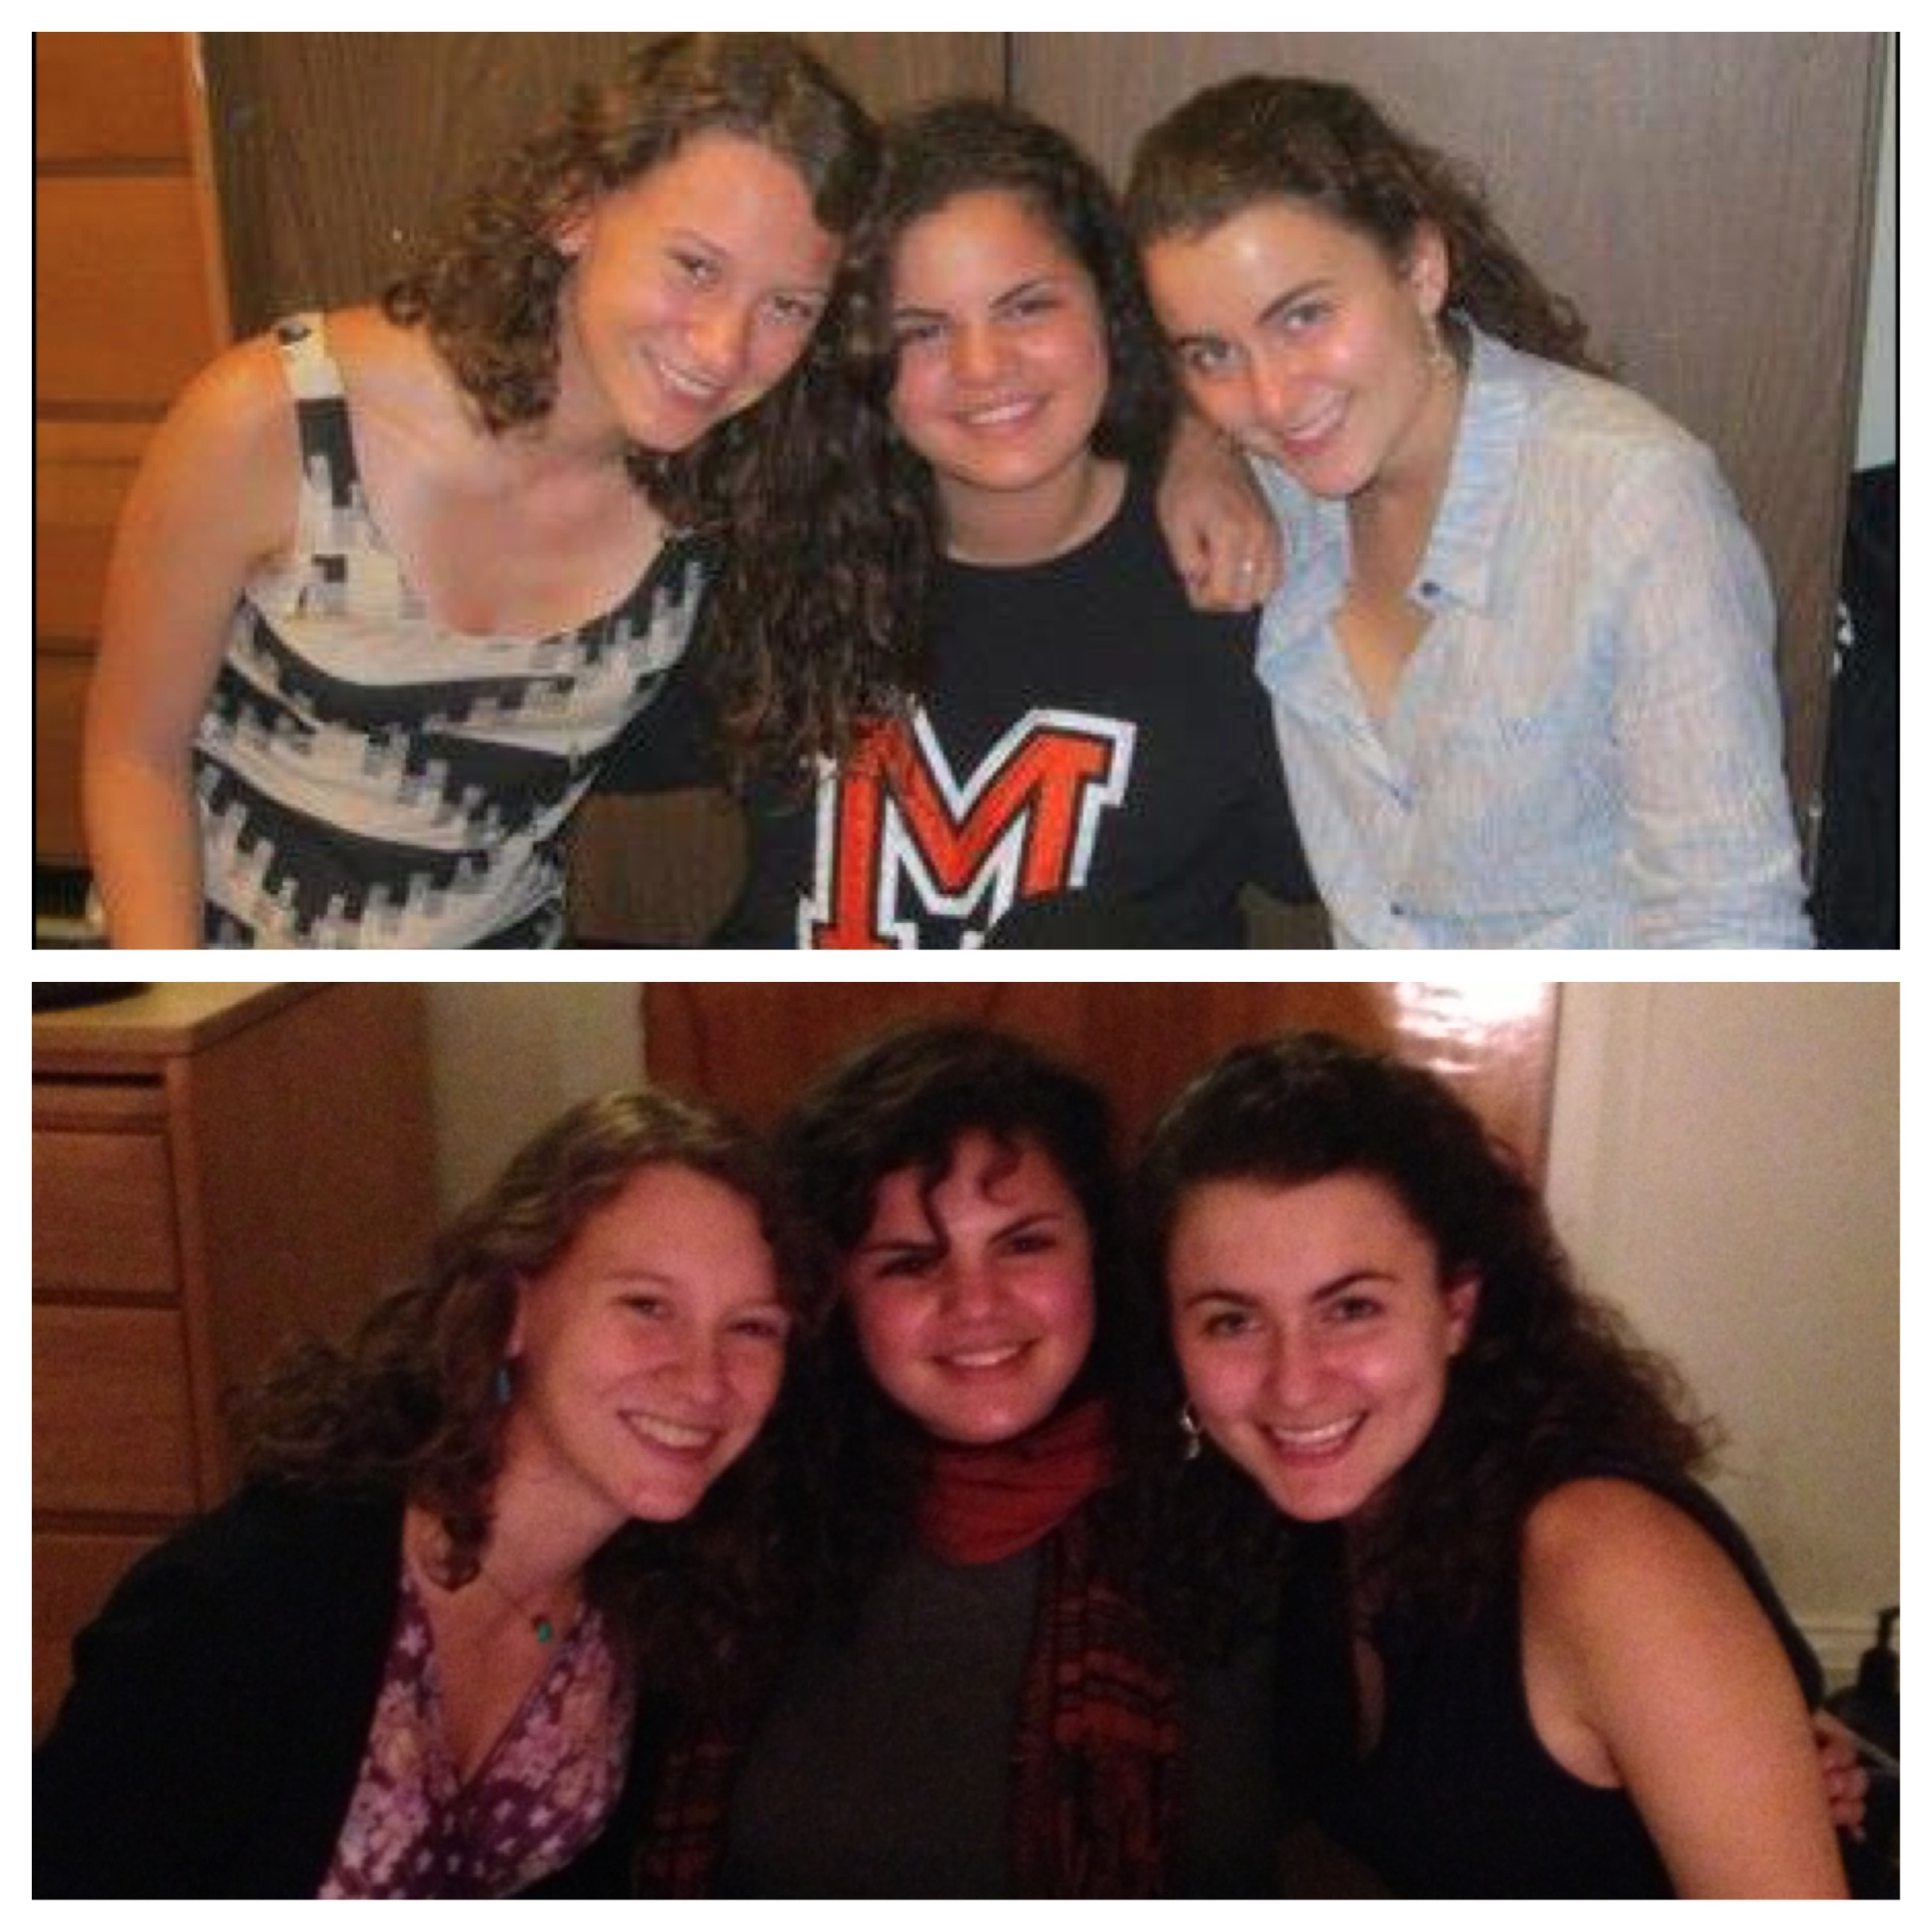 Marina and friends, 2012 and 2013